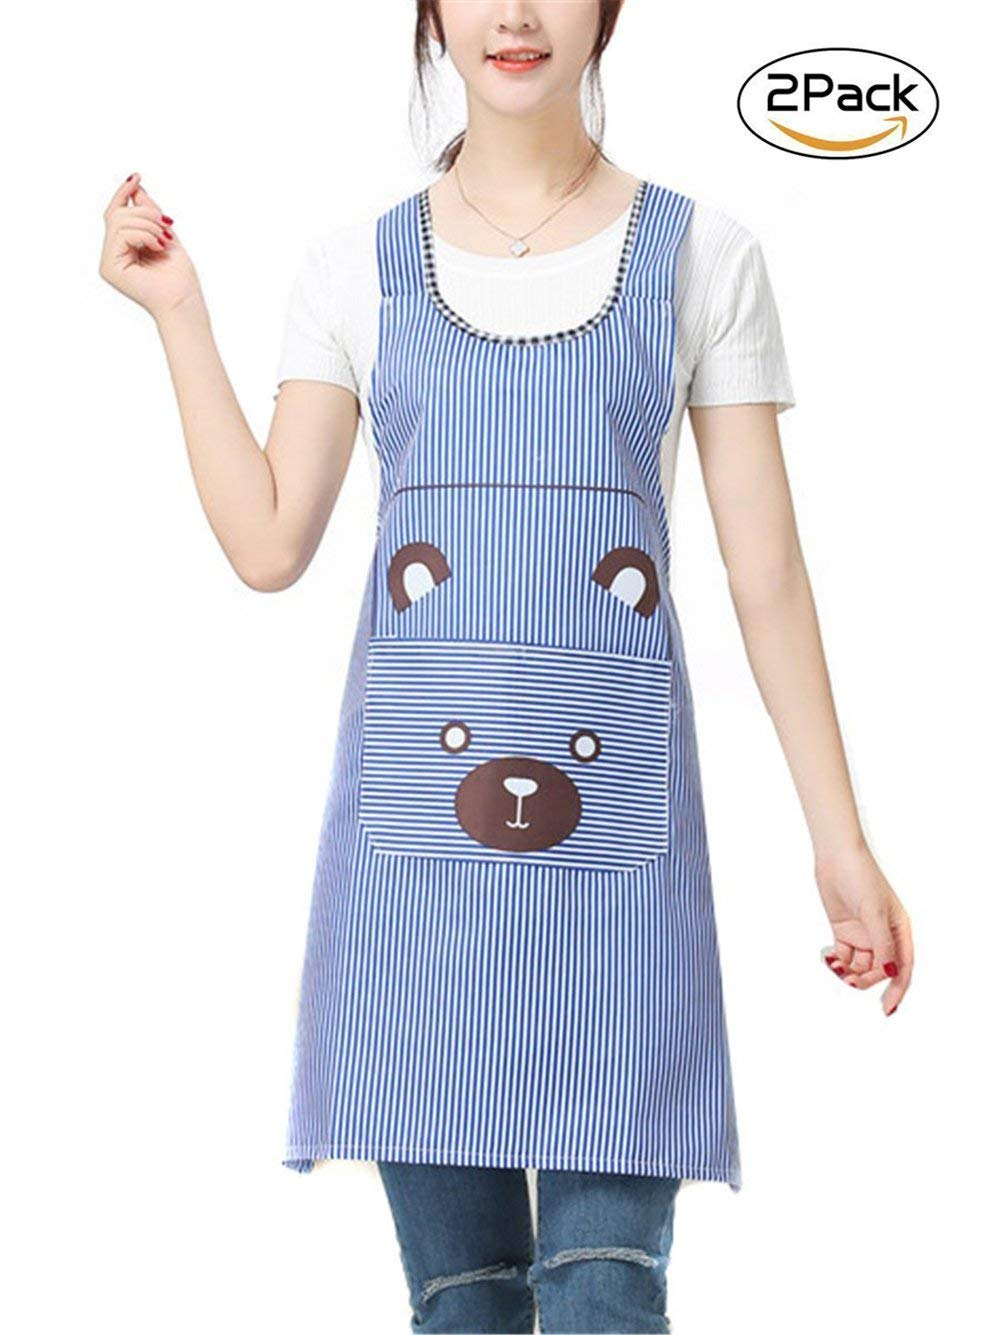 2-Piece Shoulder Strap H-type Fashion Aprons, Sleeveless Home Service Waterproof Cute PVC Aprons, Waterproof Sleeveless Aprons (Blue)